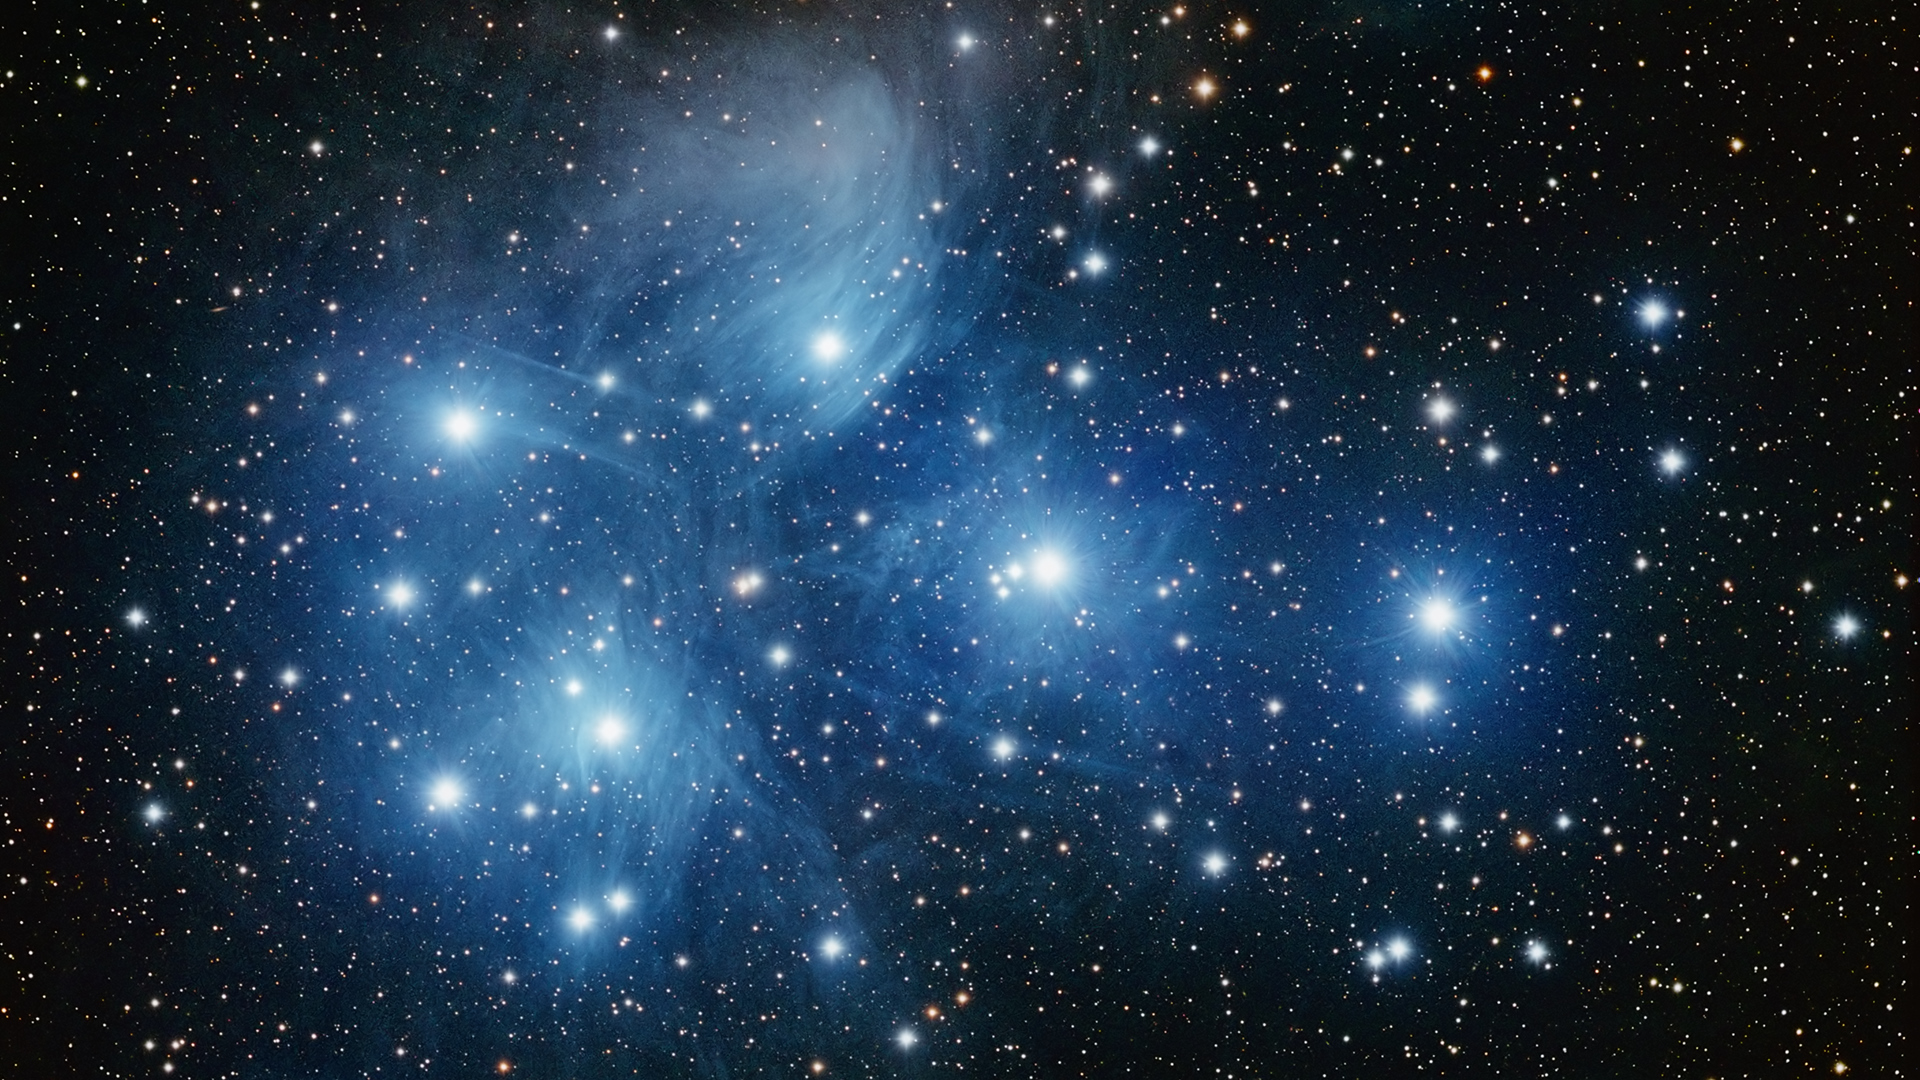 StarCluster Orion Wallpaper (page 2) - Pics about space